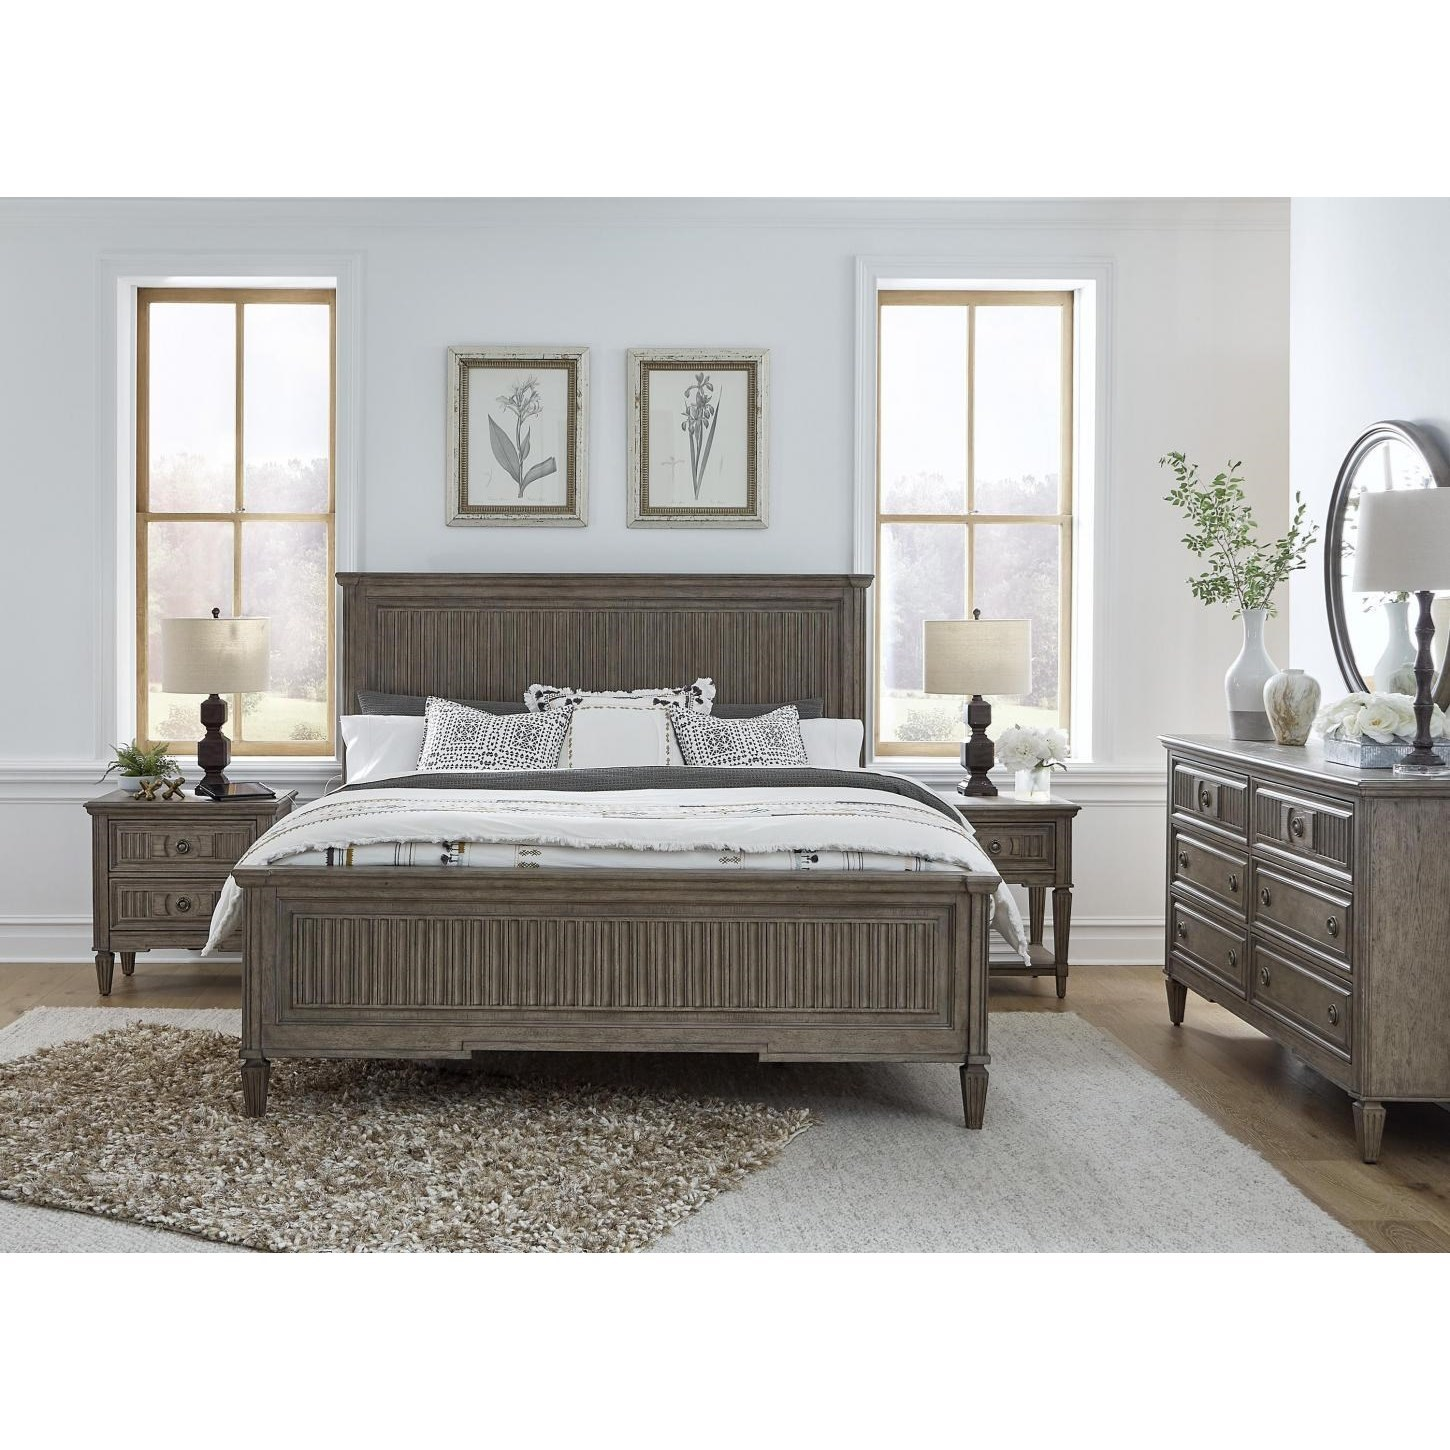 Strasbourg King Bedroom Group by Aspenhome at Stoney Creek Furniture